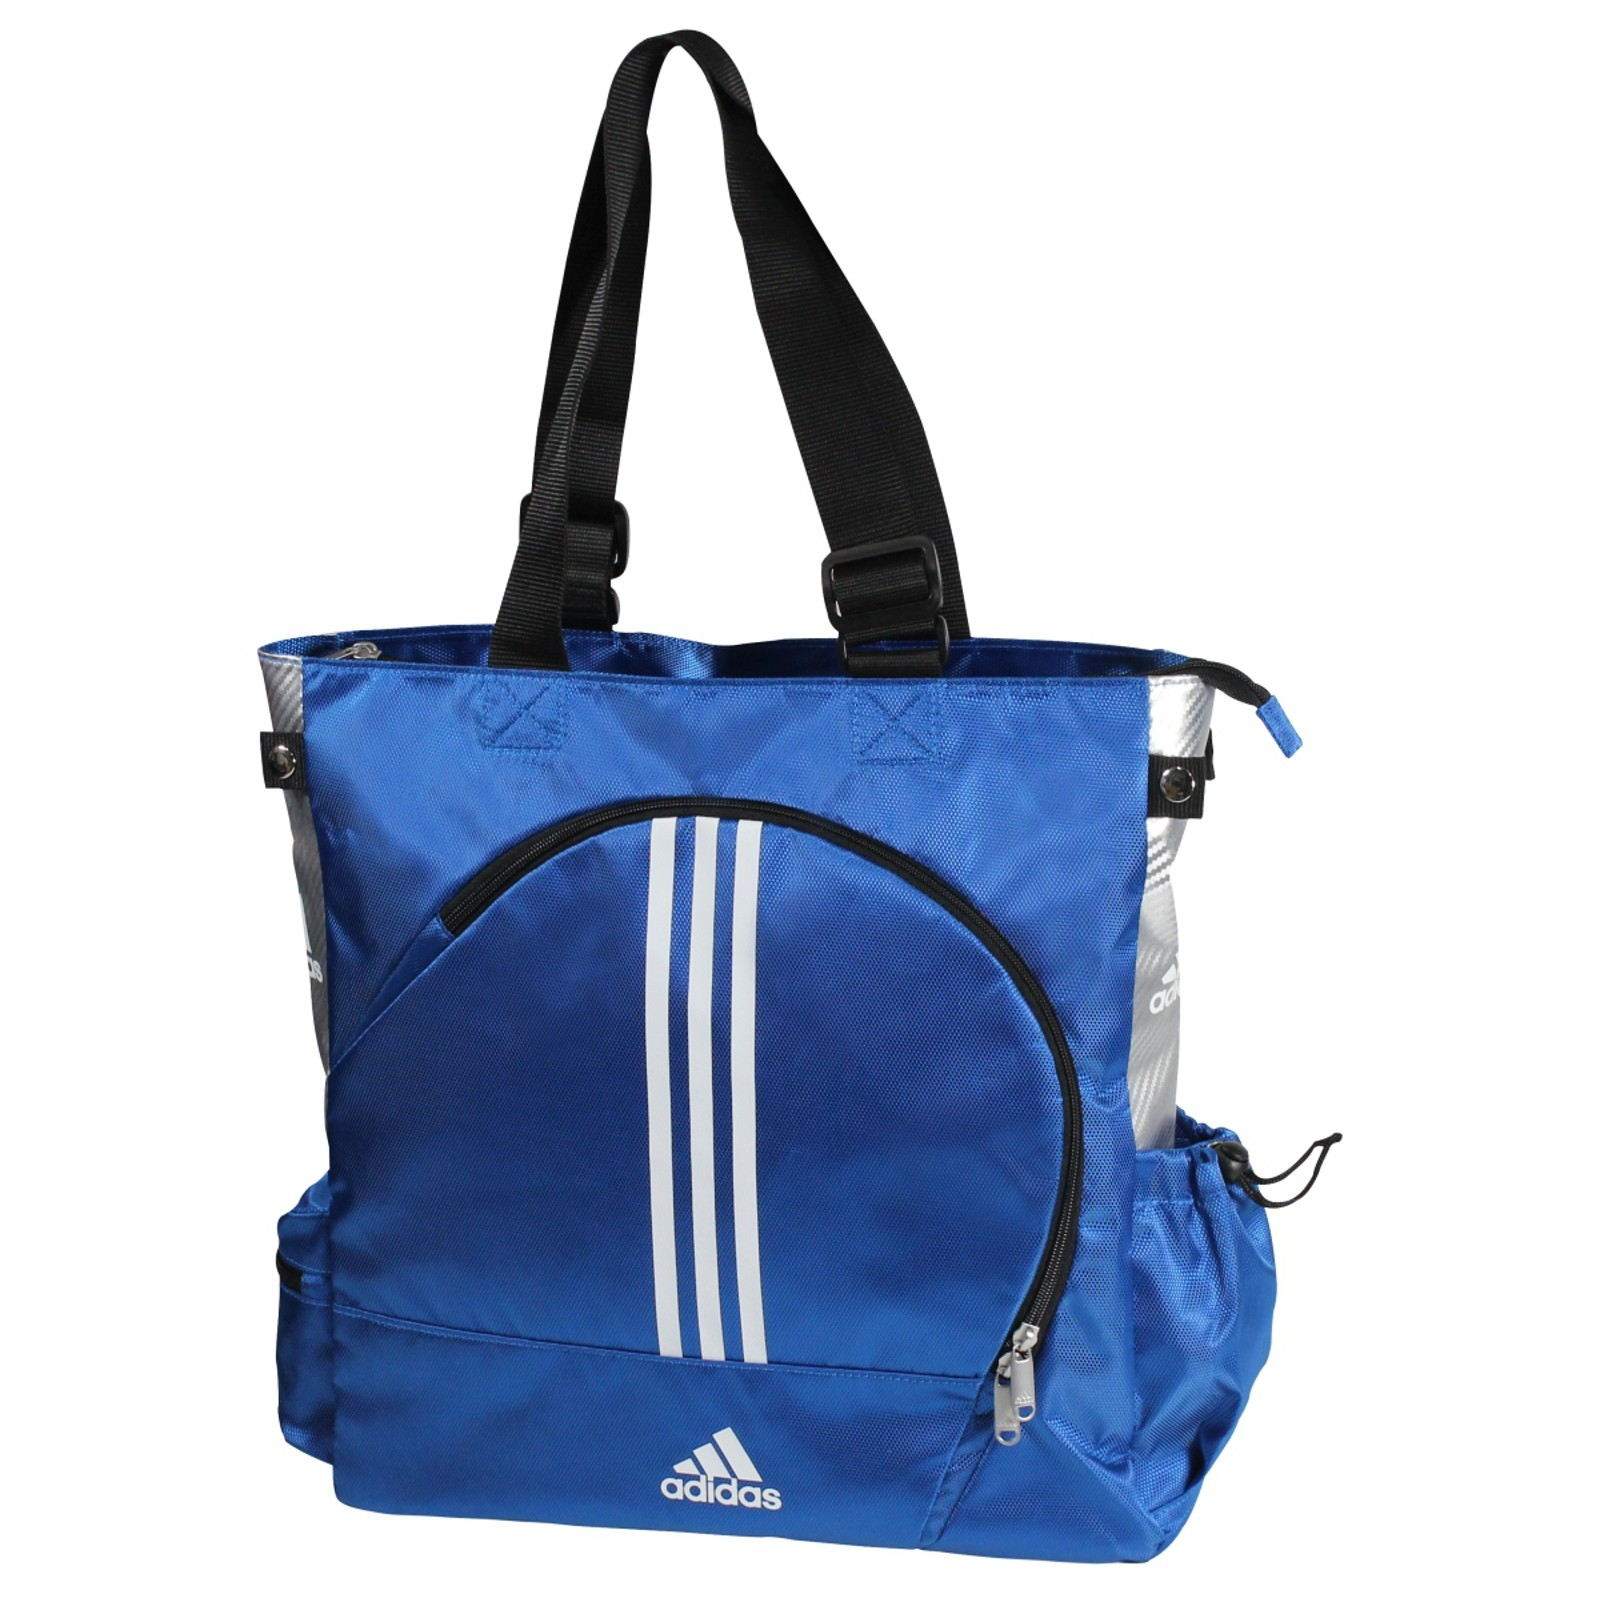 adidas club line lady sportbag best buy at sport tiedje. Black Bedroom Furniture Sets. Home Design Ideas